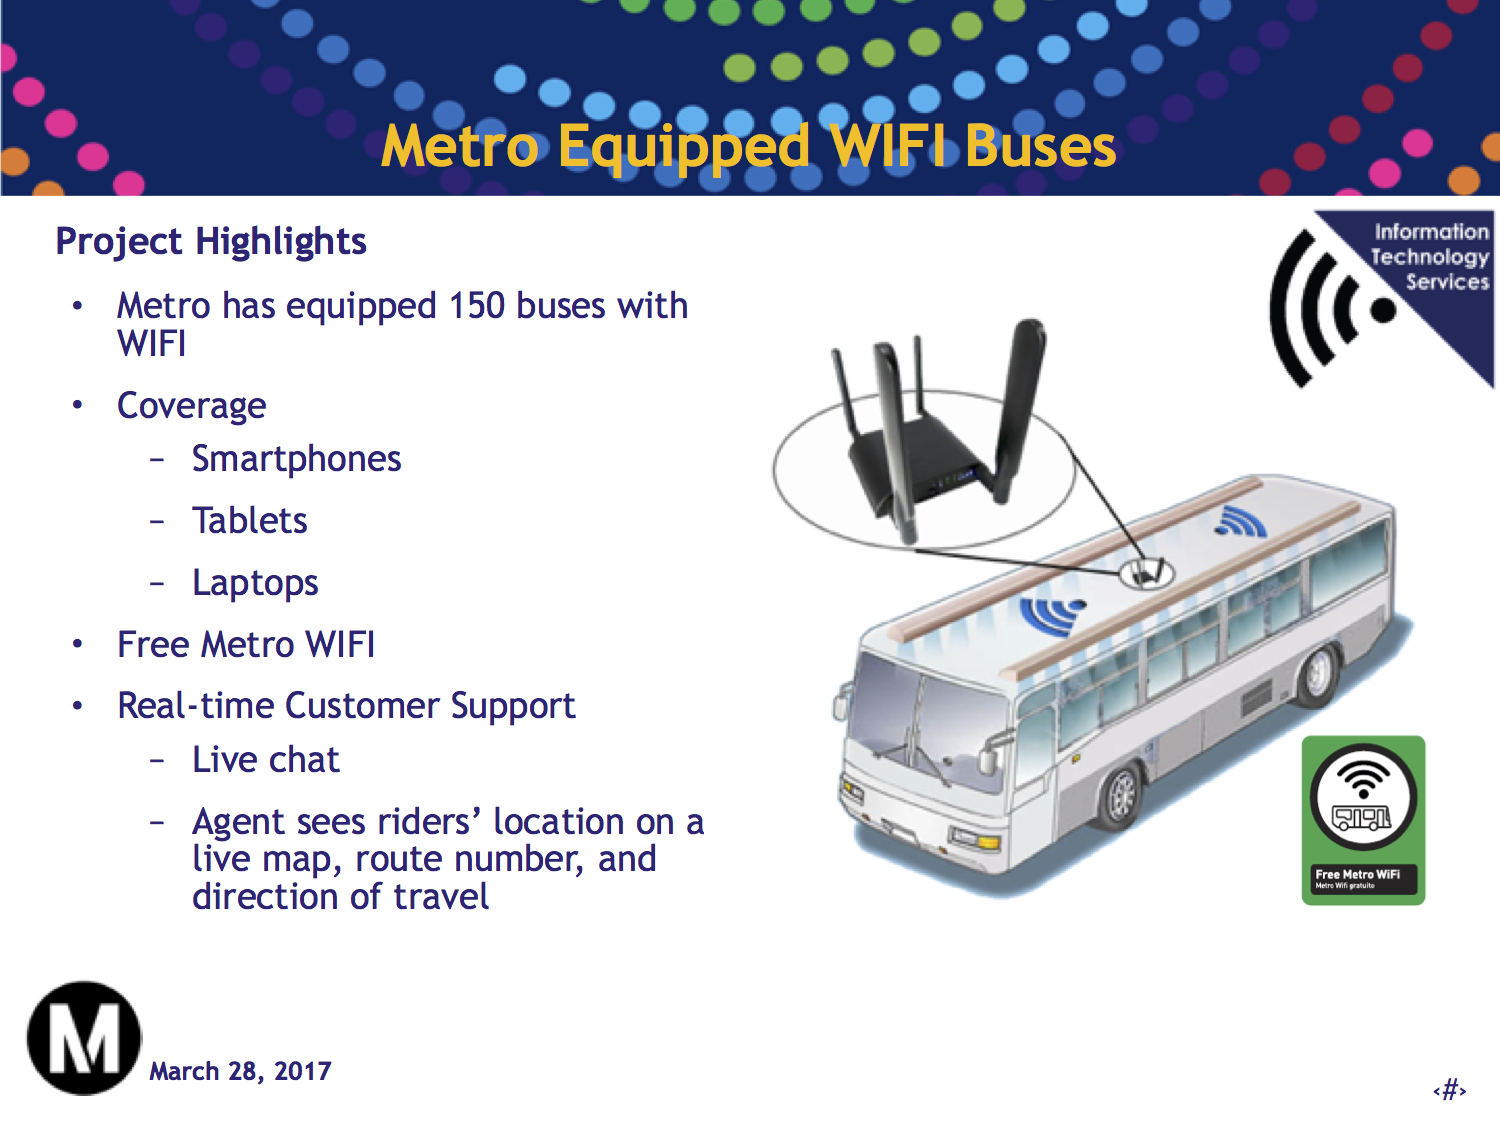 Pilot program begins to put WiFi on 150 Metro buses - The Source